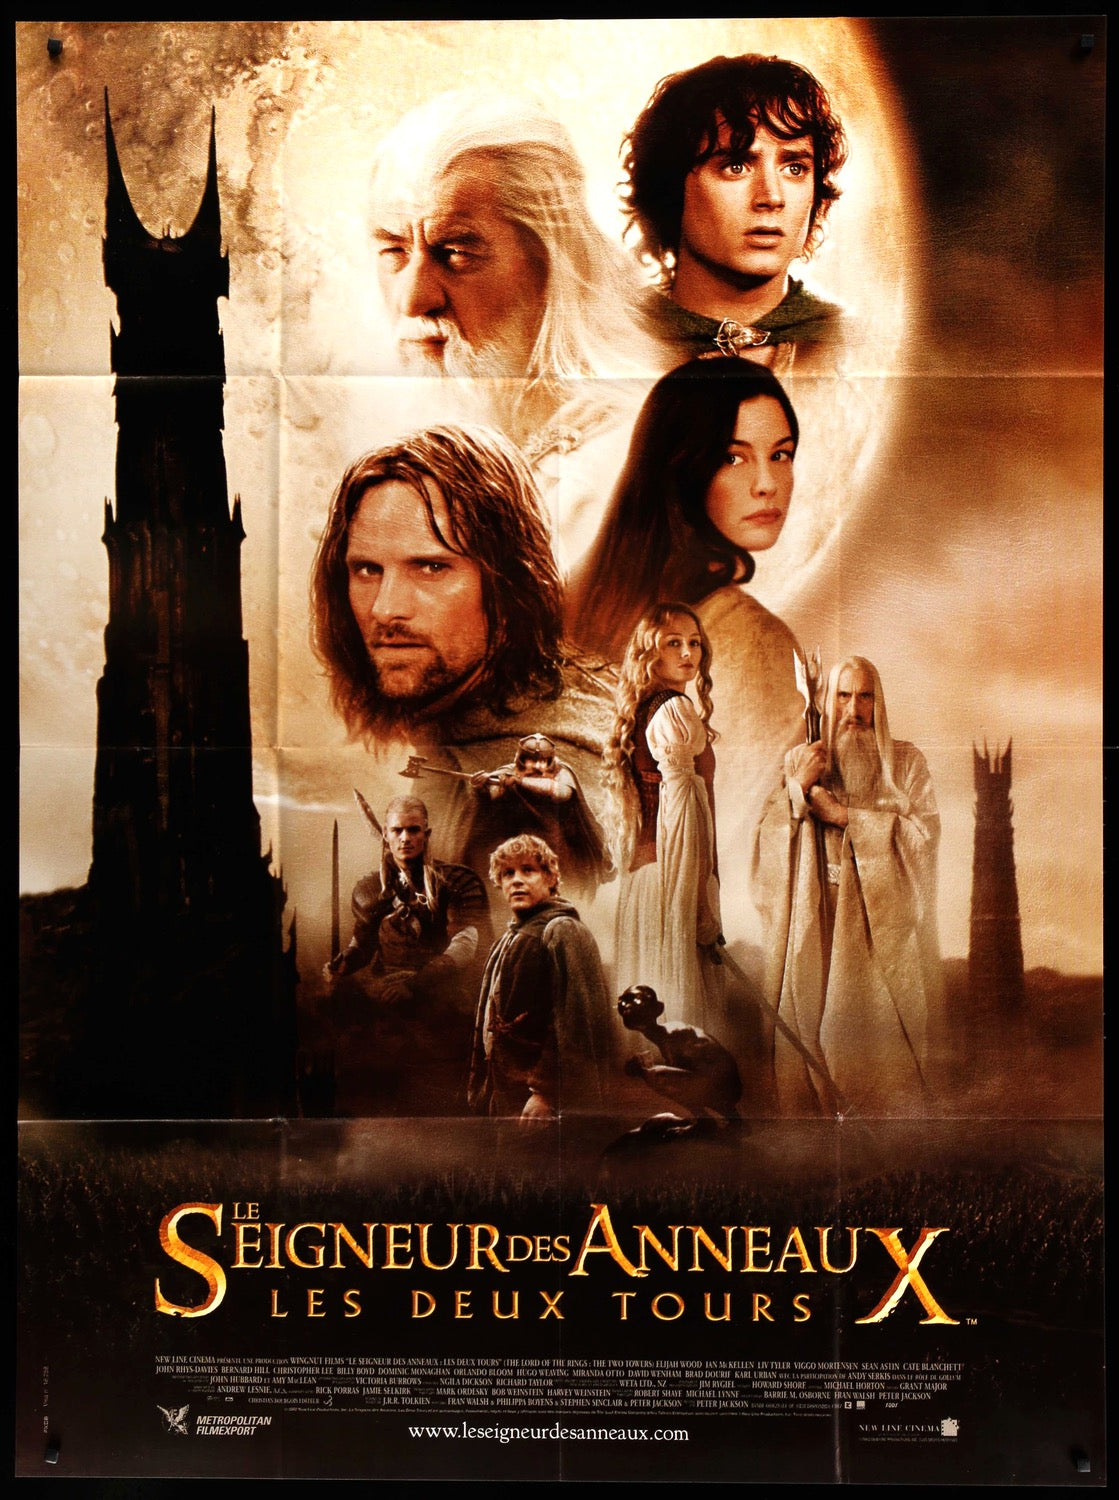 The Lord Of The Rings The Two Towers 2002 French Movie Poster Original Film Art Vintage Movie Posters